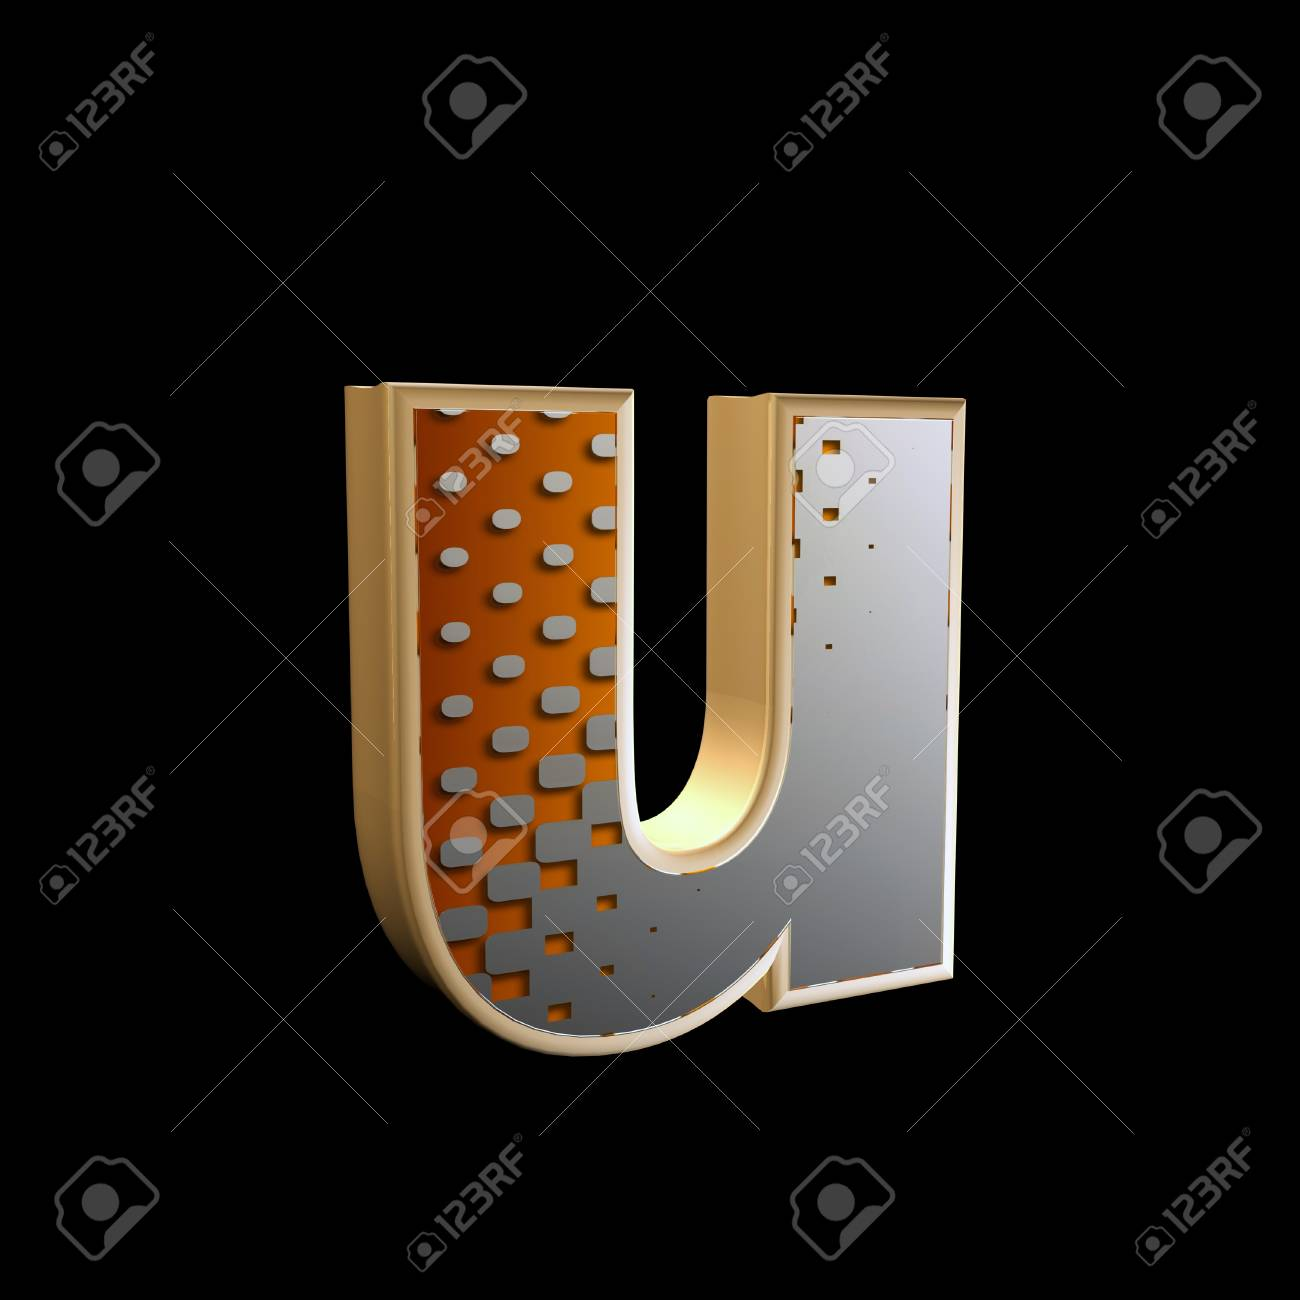 abstract 3d letter with halftone texture - u Stock Photo - 15212840